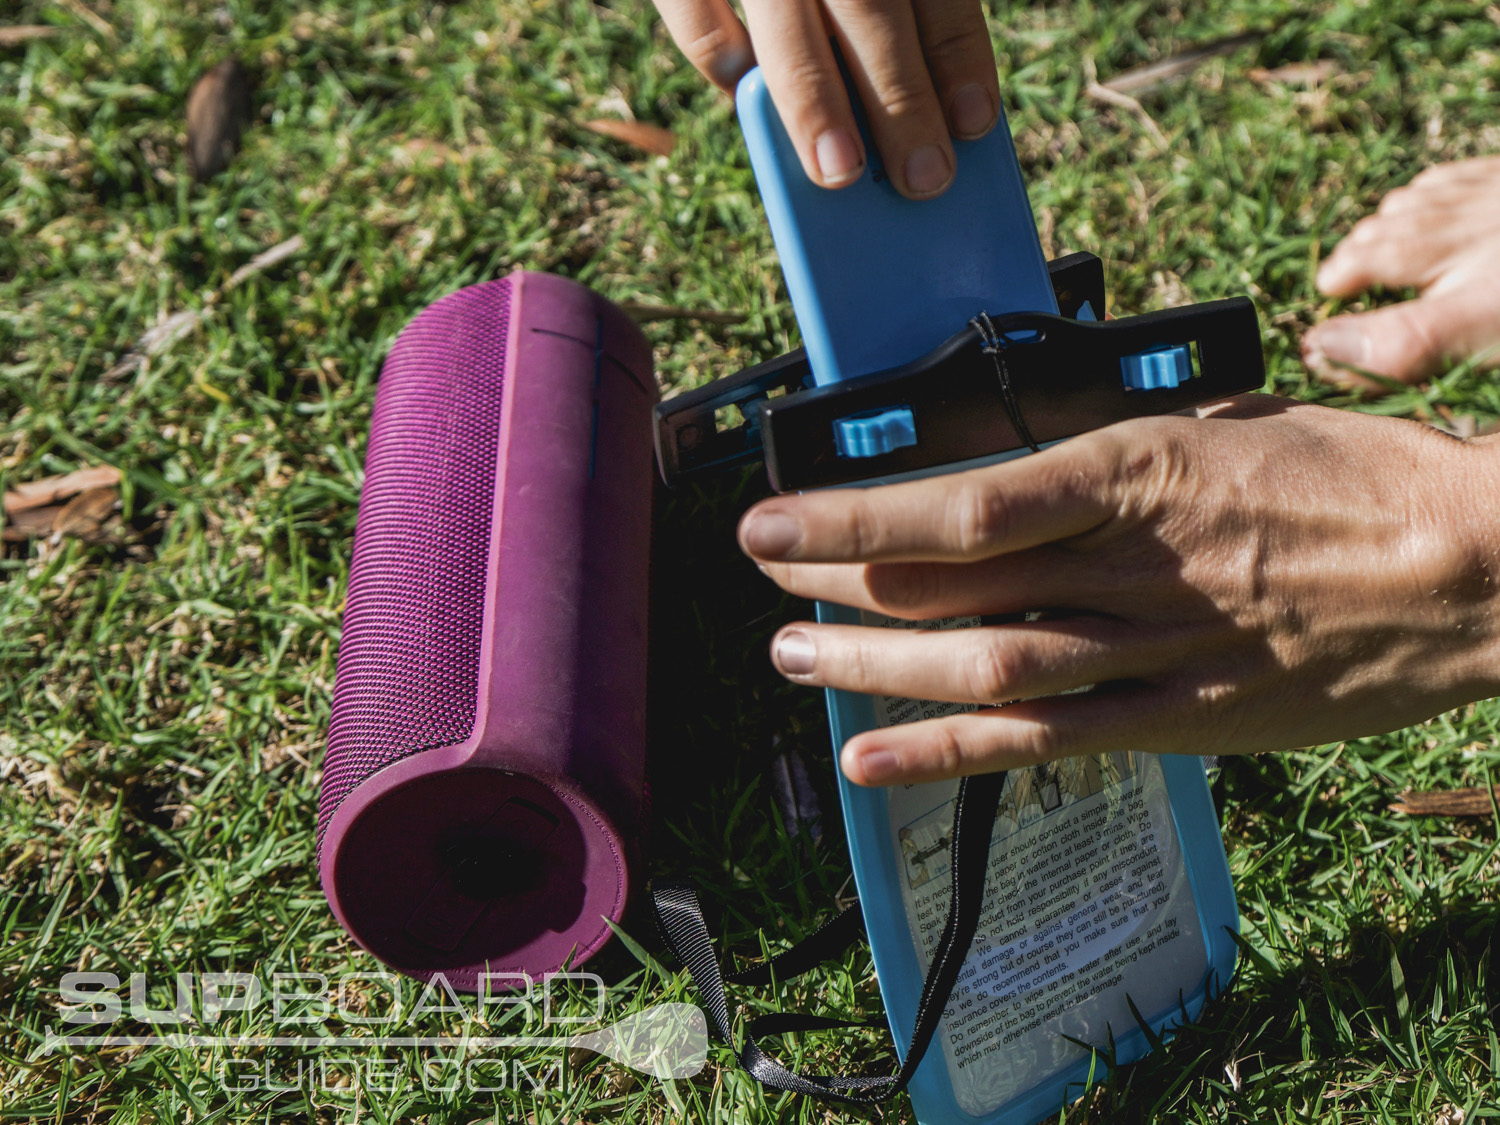 waterproof phone case for SUP